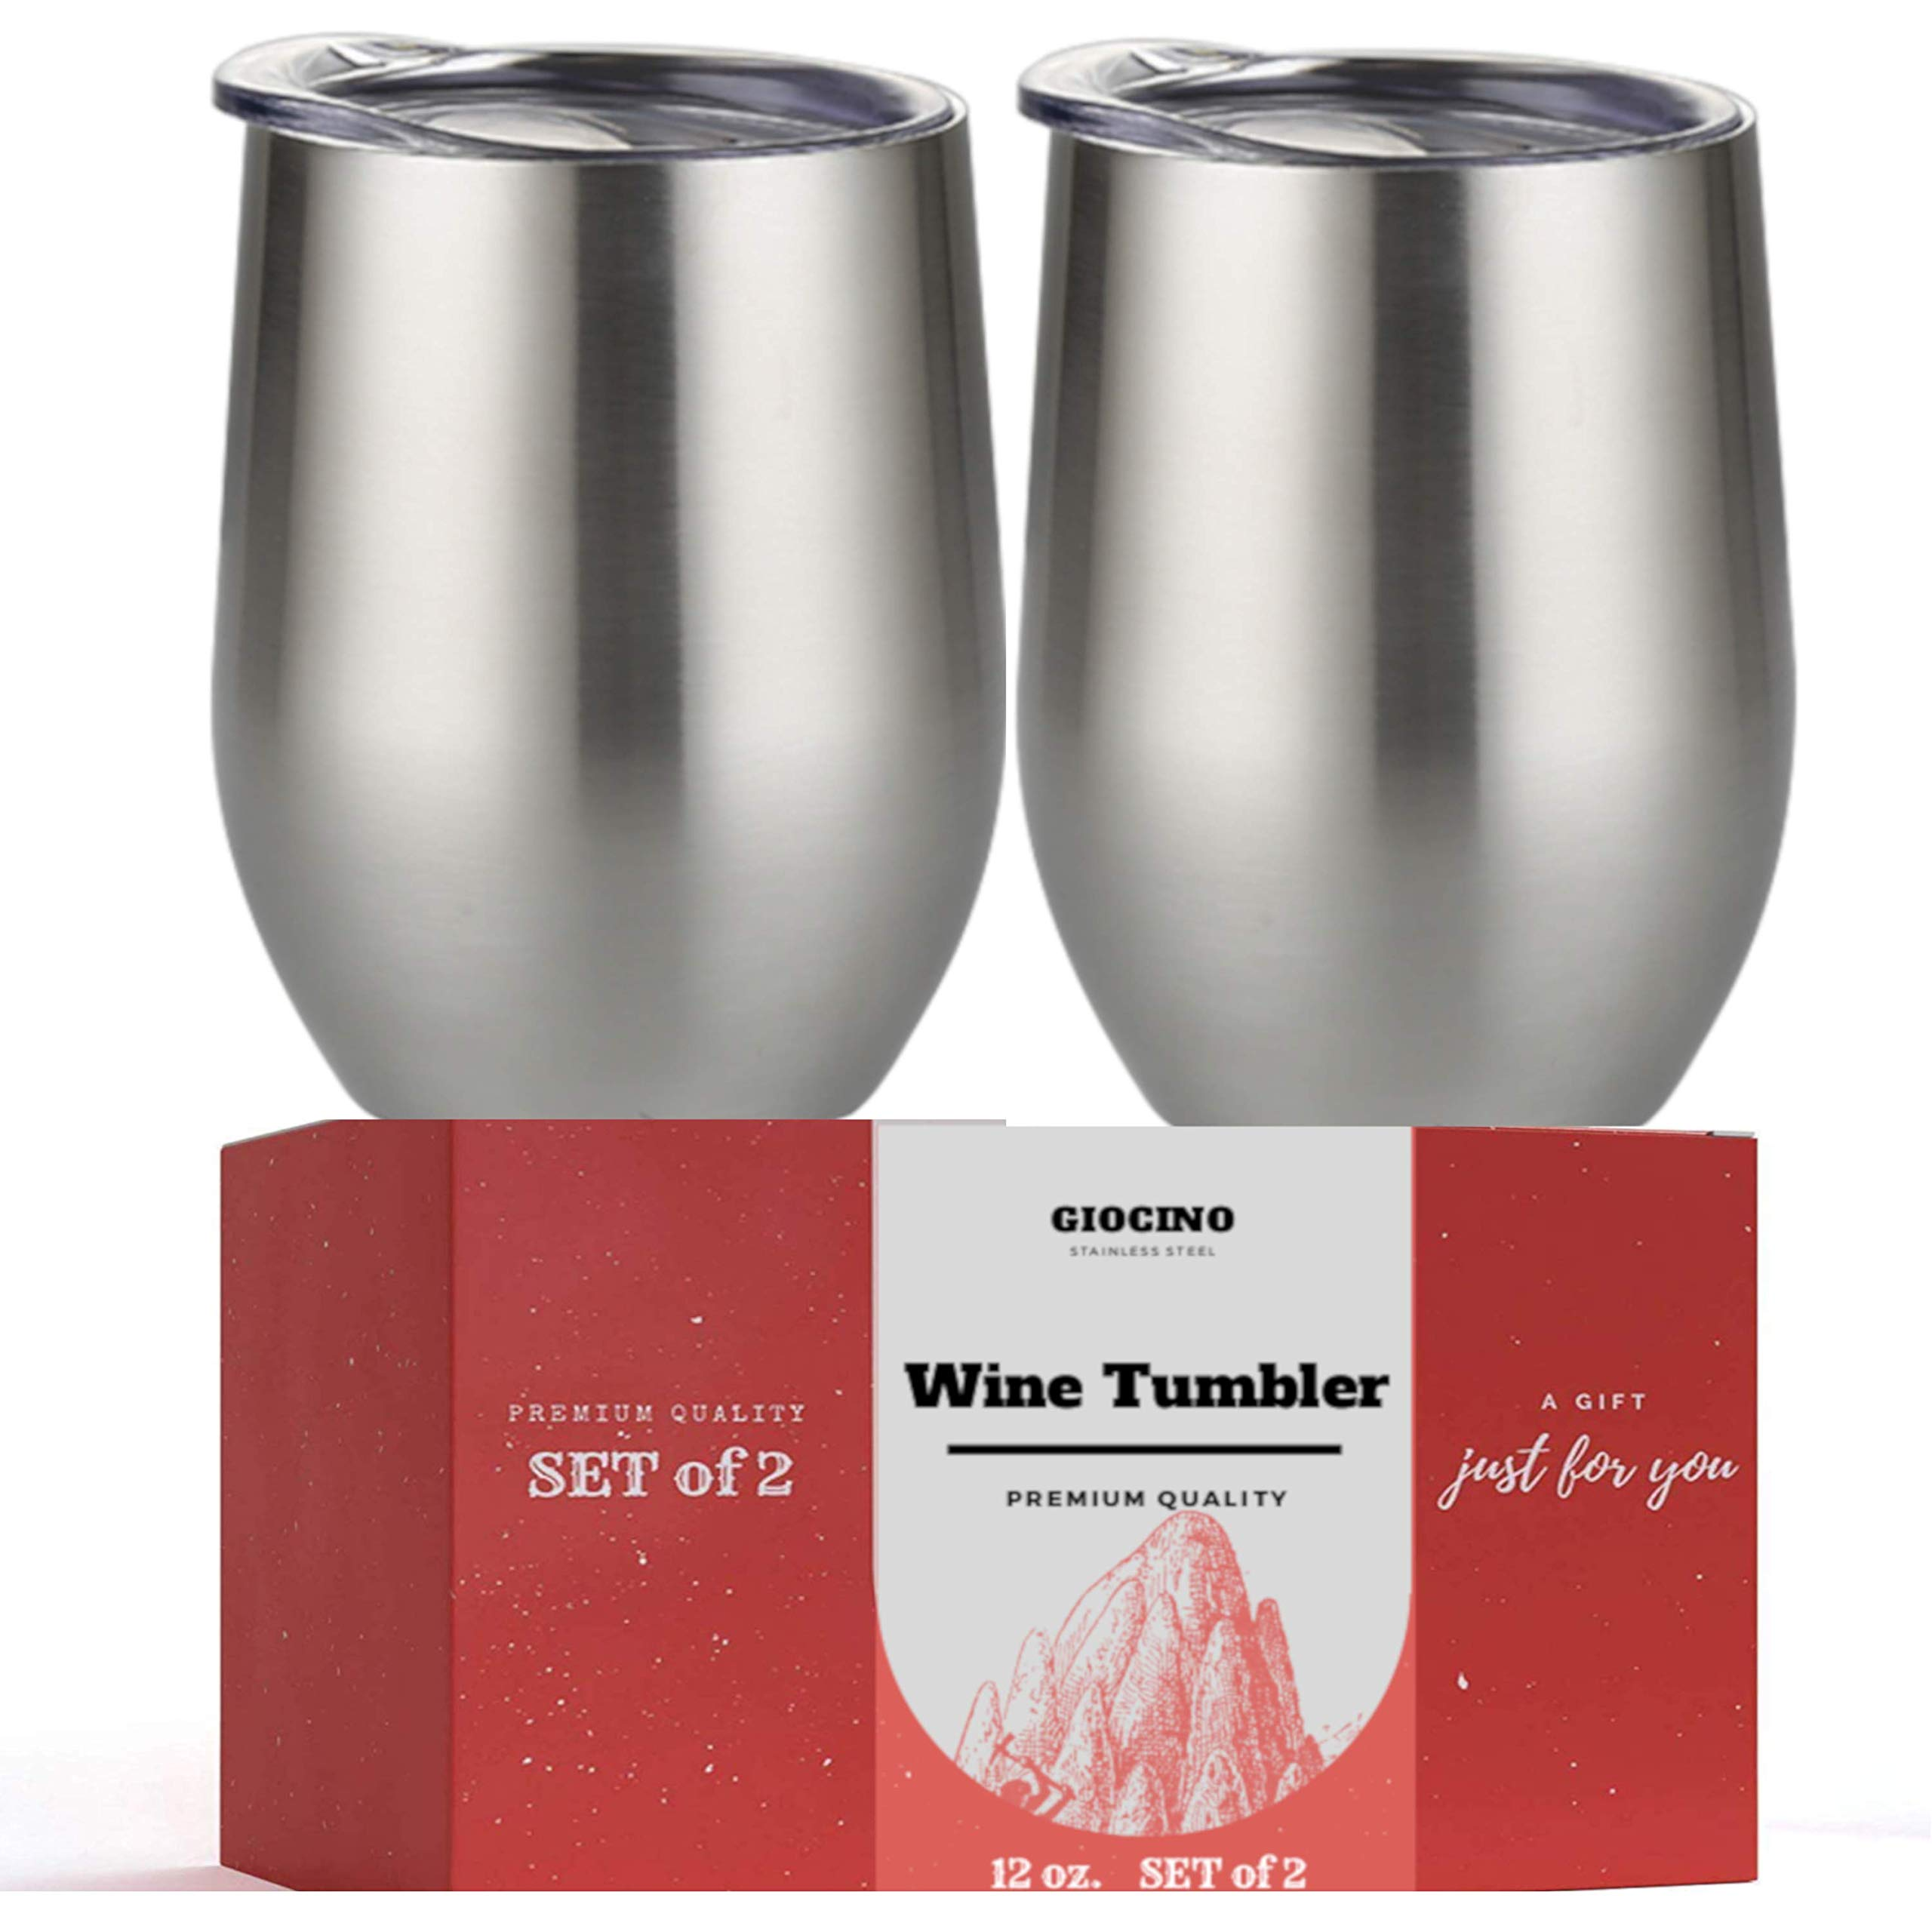 Wine Tumbler - Set of 2 - Stainless Steel Wine Glasses Vacuum Insulated Double Walled Stemless Wine Glass With Lid, 12 Ounce